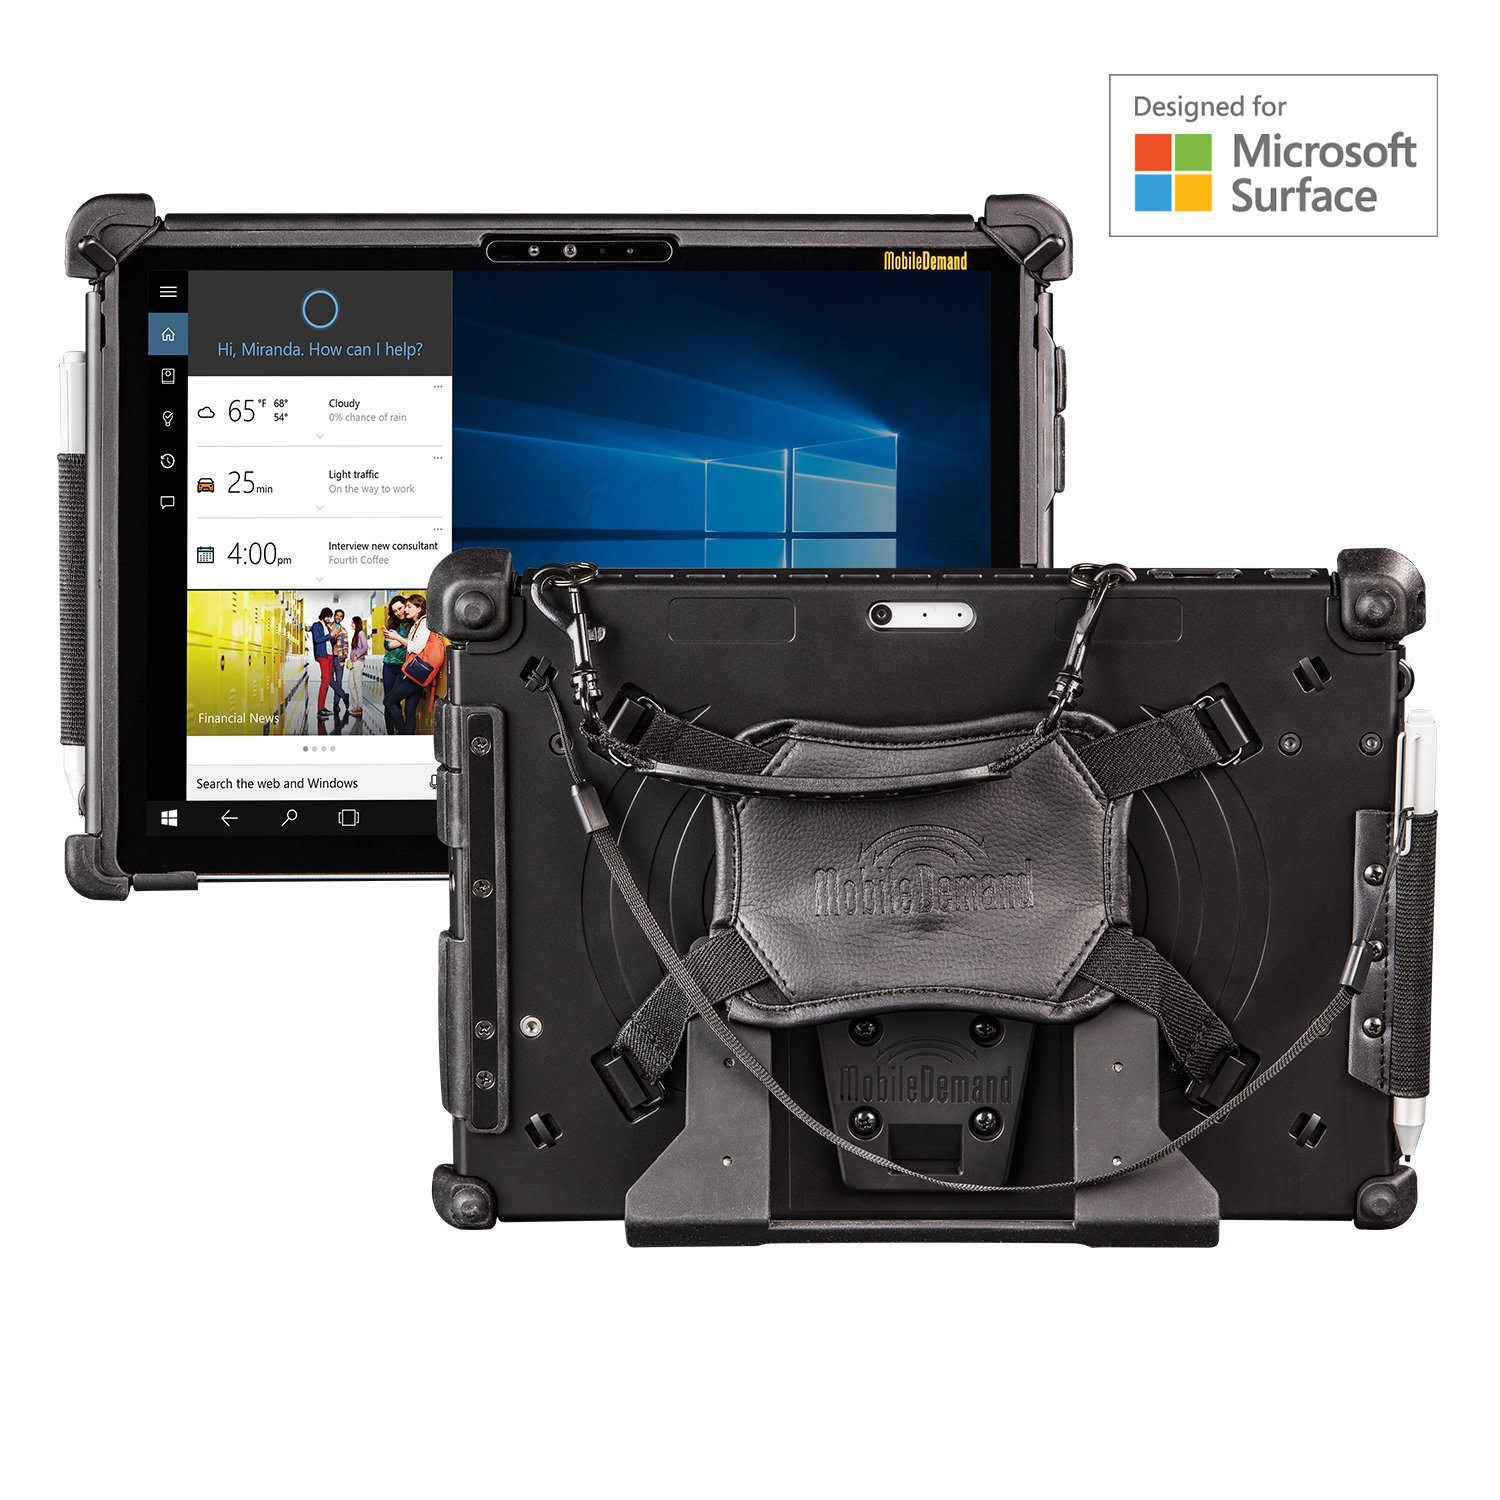 edge surface pro htm axtion a the photo friend email tablet rug m p cwa for rugged j case larger